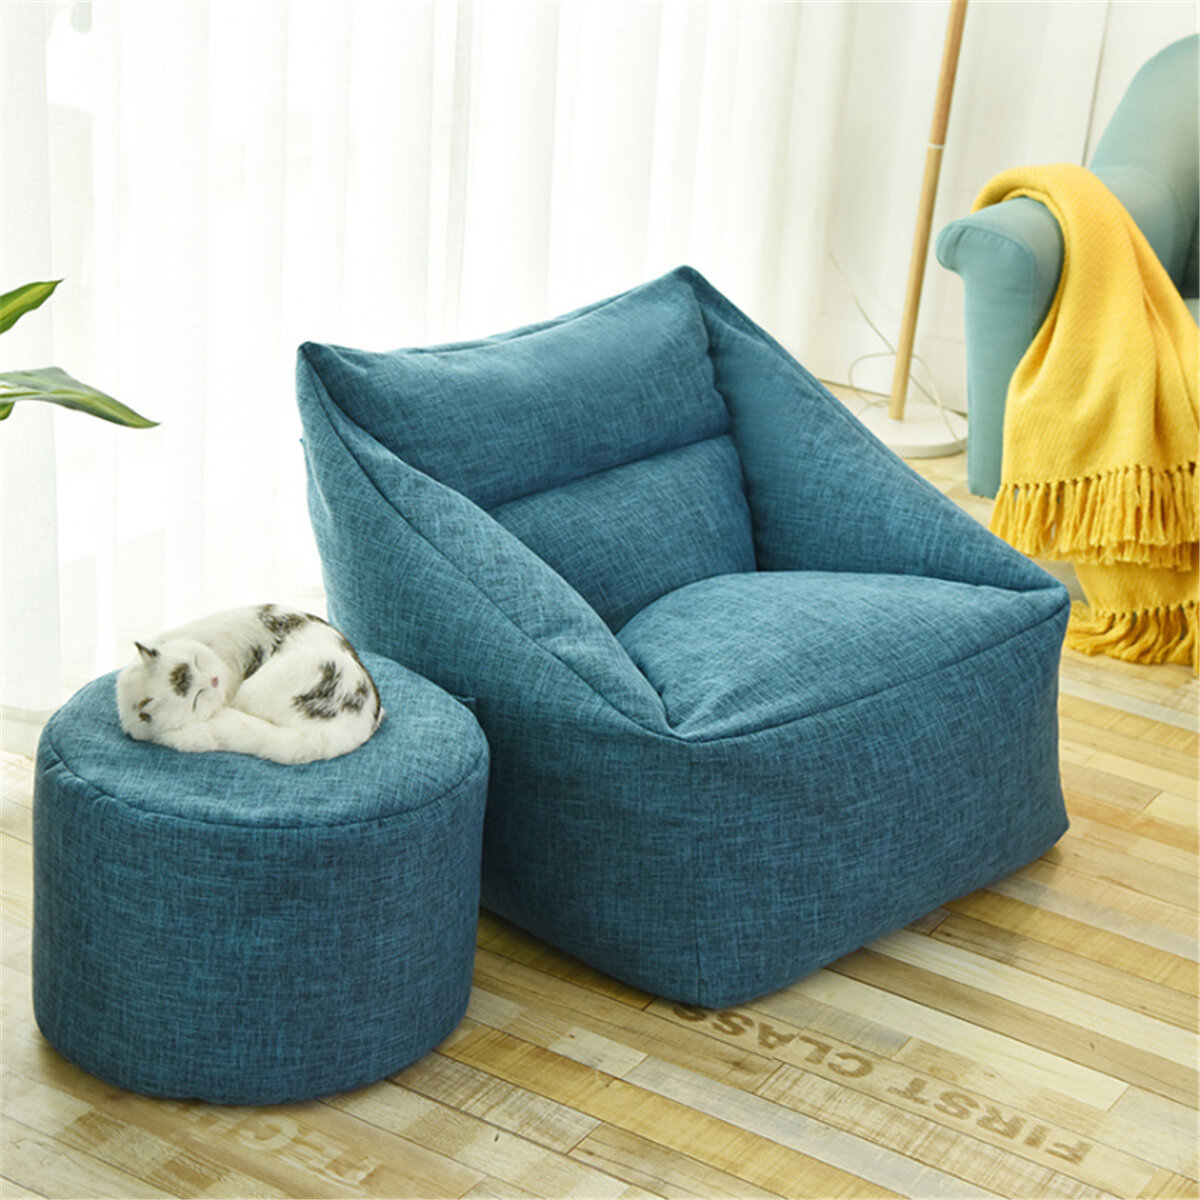 Pleasant Large Bean Bag Chair Covers Lazy Sofa Indoor Seat Armchair Washable Cozy Game Lounger Gmtry Best Dining Table And Chair Ideas Images Gmtryco